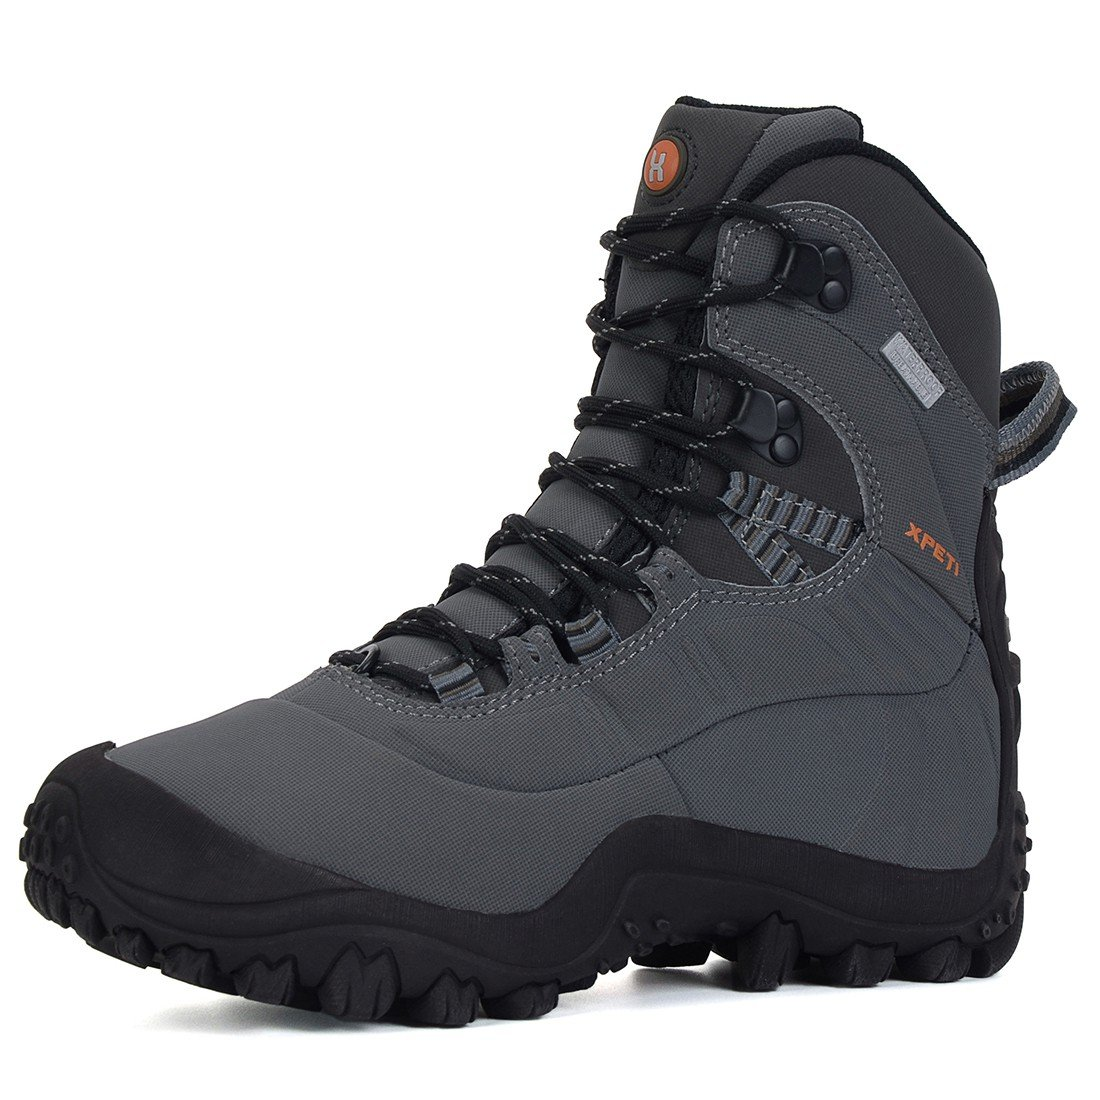 XPETI Women's Waterproof Mid High-Top Hiking Outdoor Boot B07F8K2X3Q 6 B(M) US|Light Grey